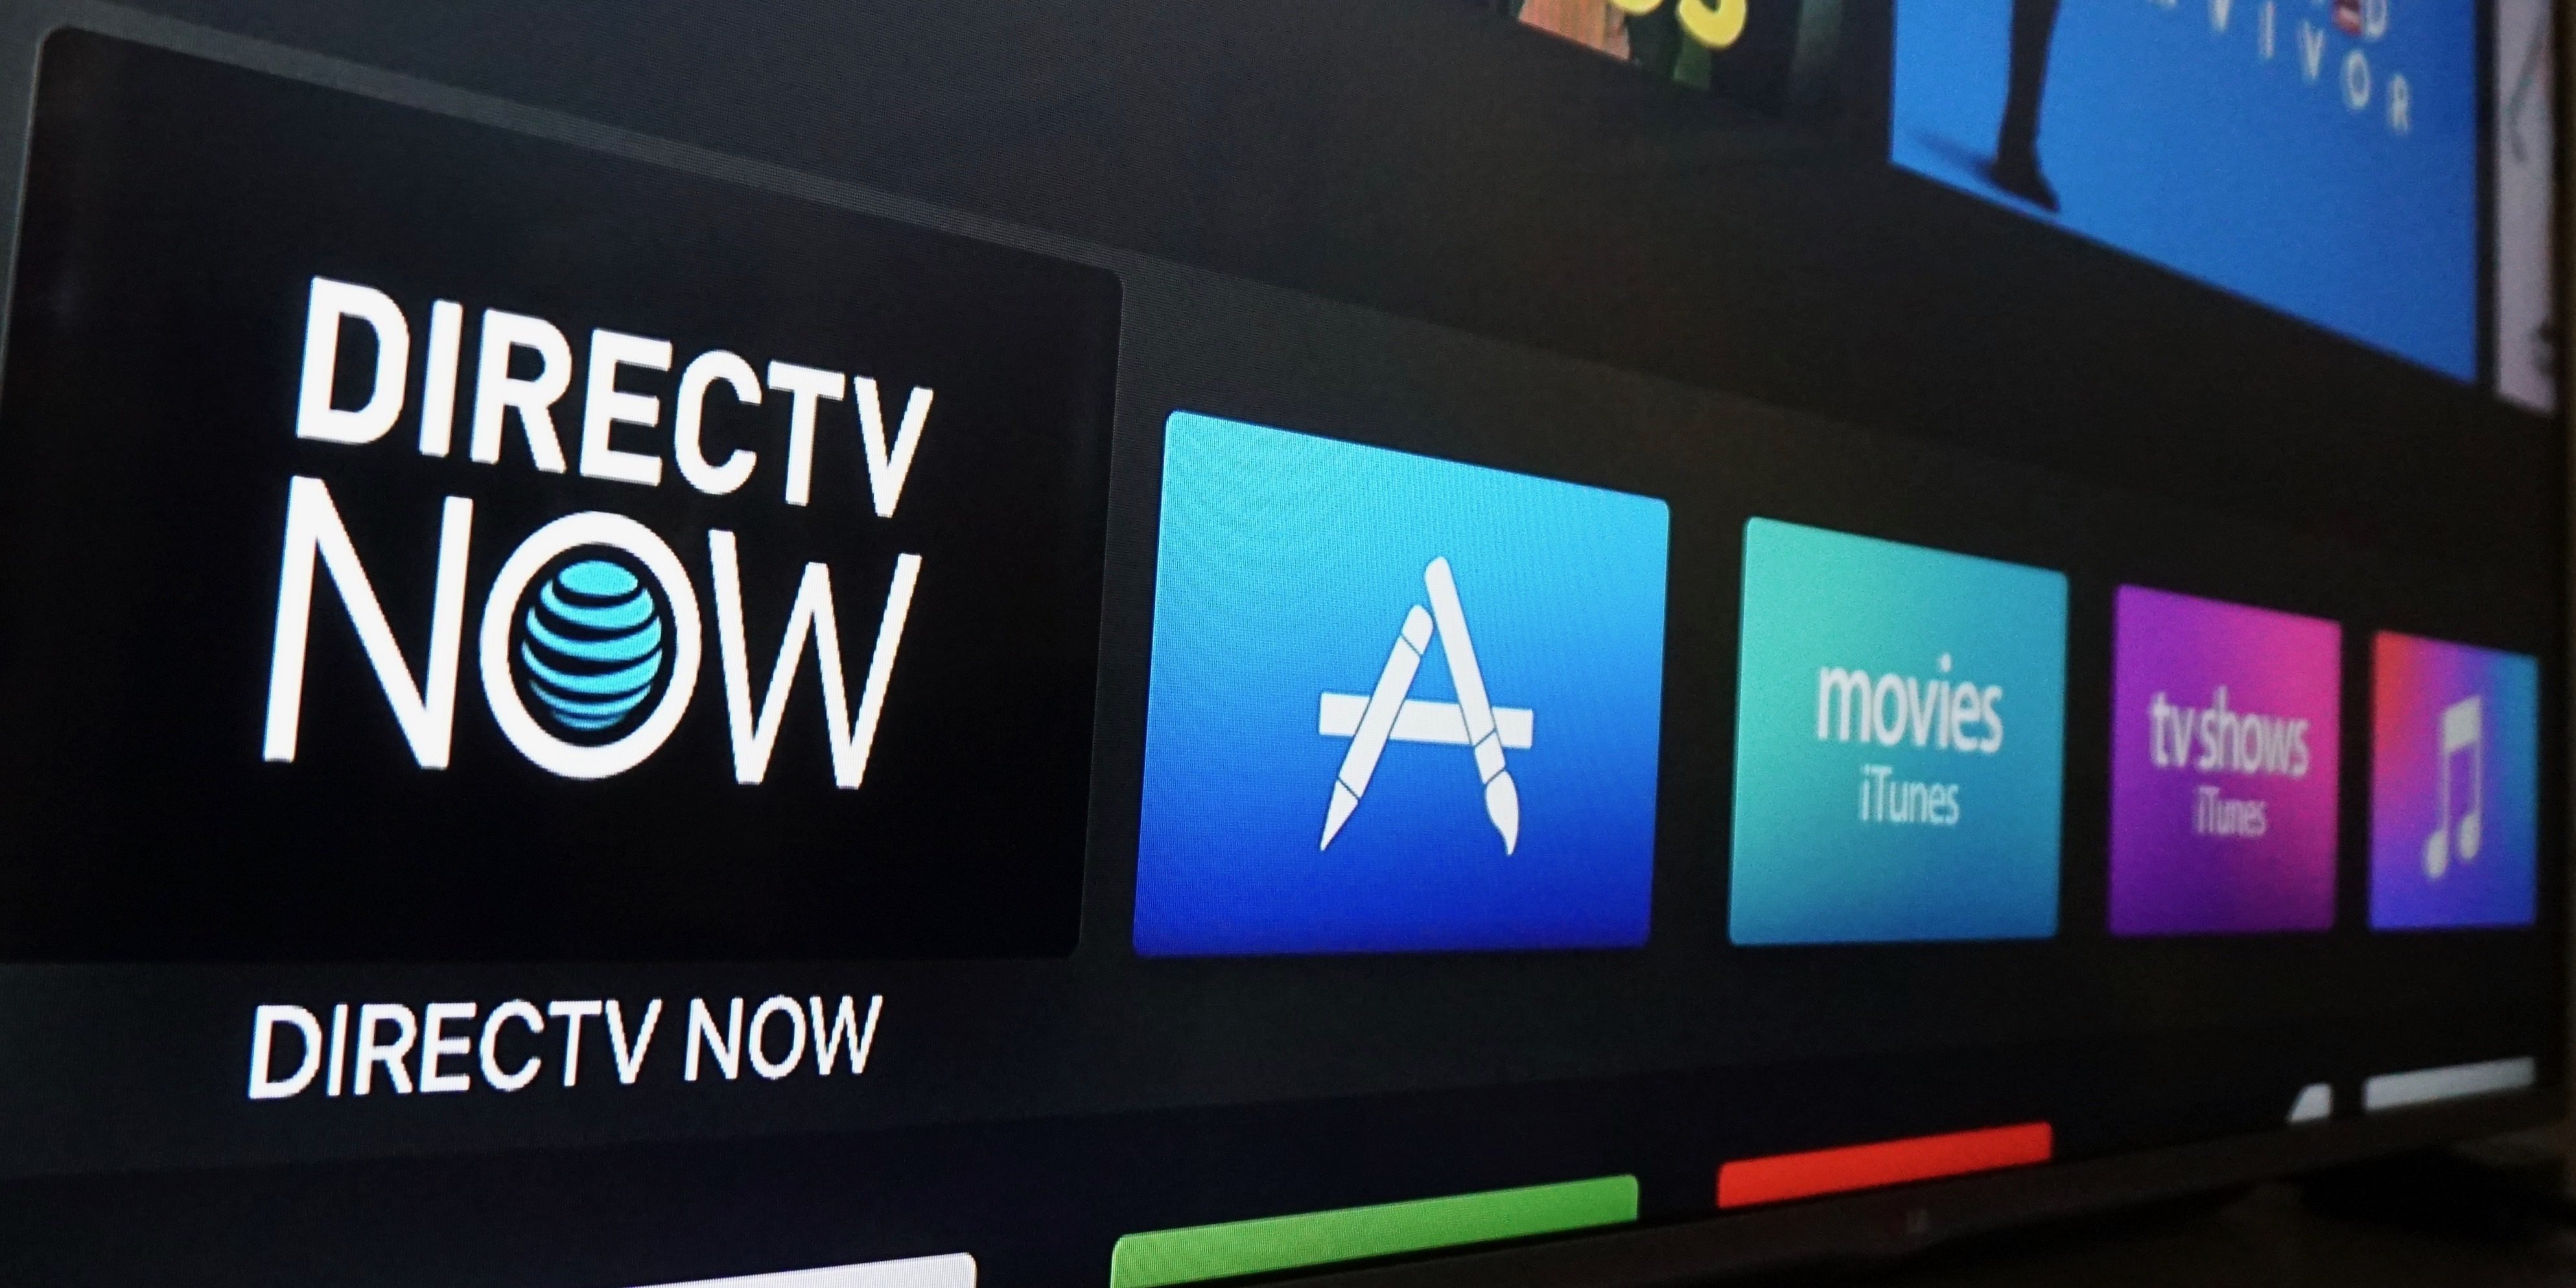 DirecTV Now offers a FREE Apple TV 4K when you sign-up for 4-months of service